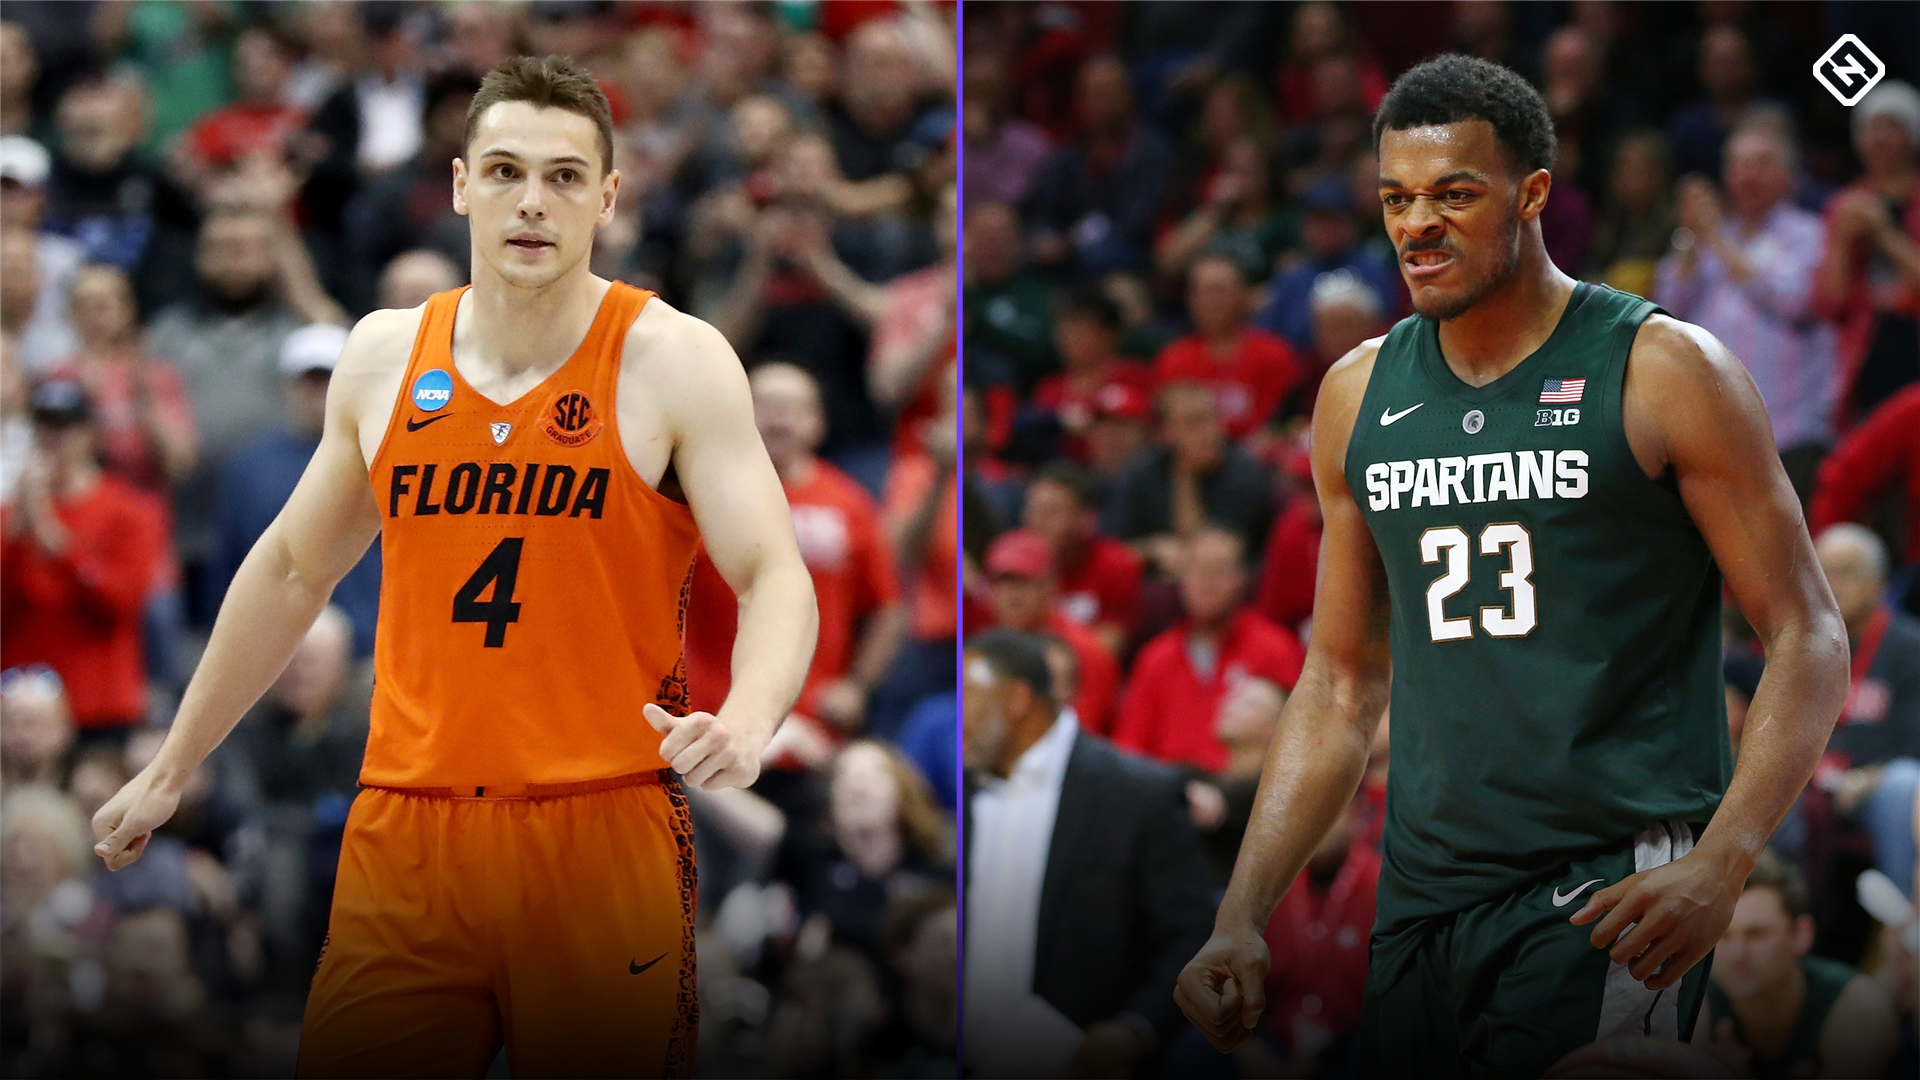 Florida vs. Michigan State: Time, TV channel, how to watch